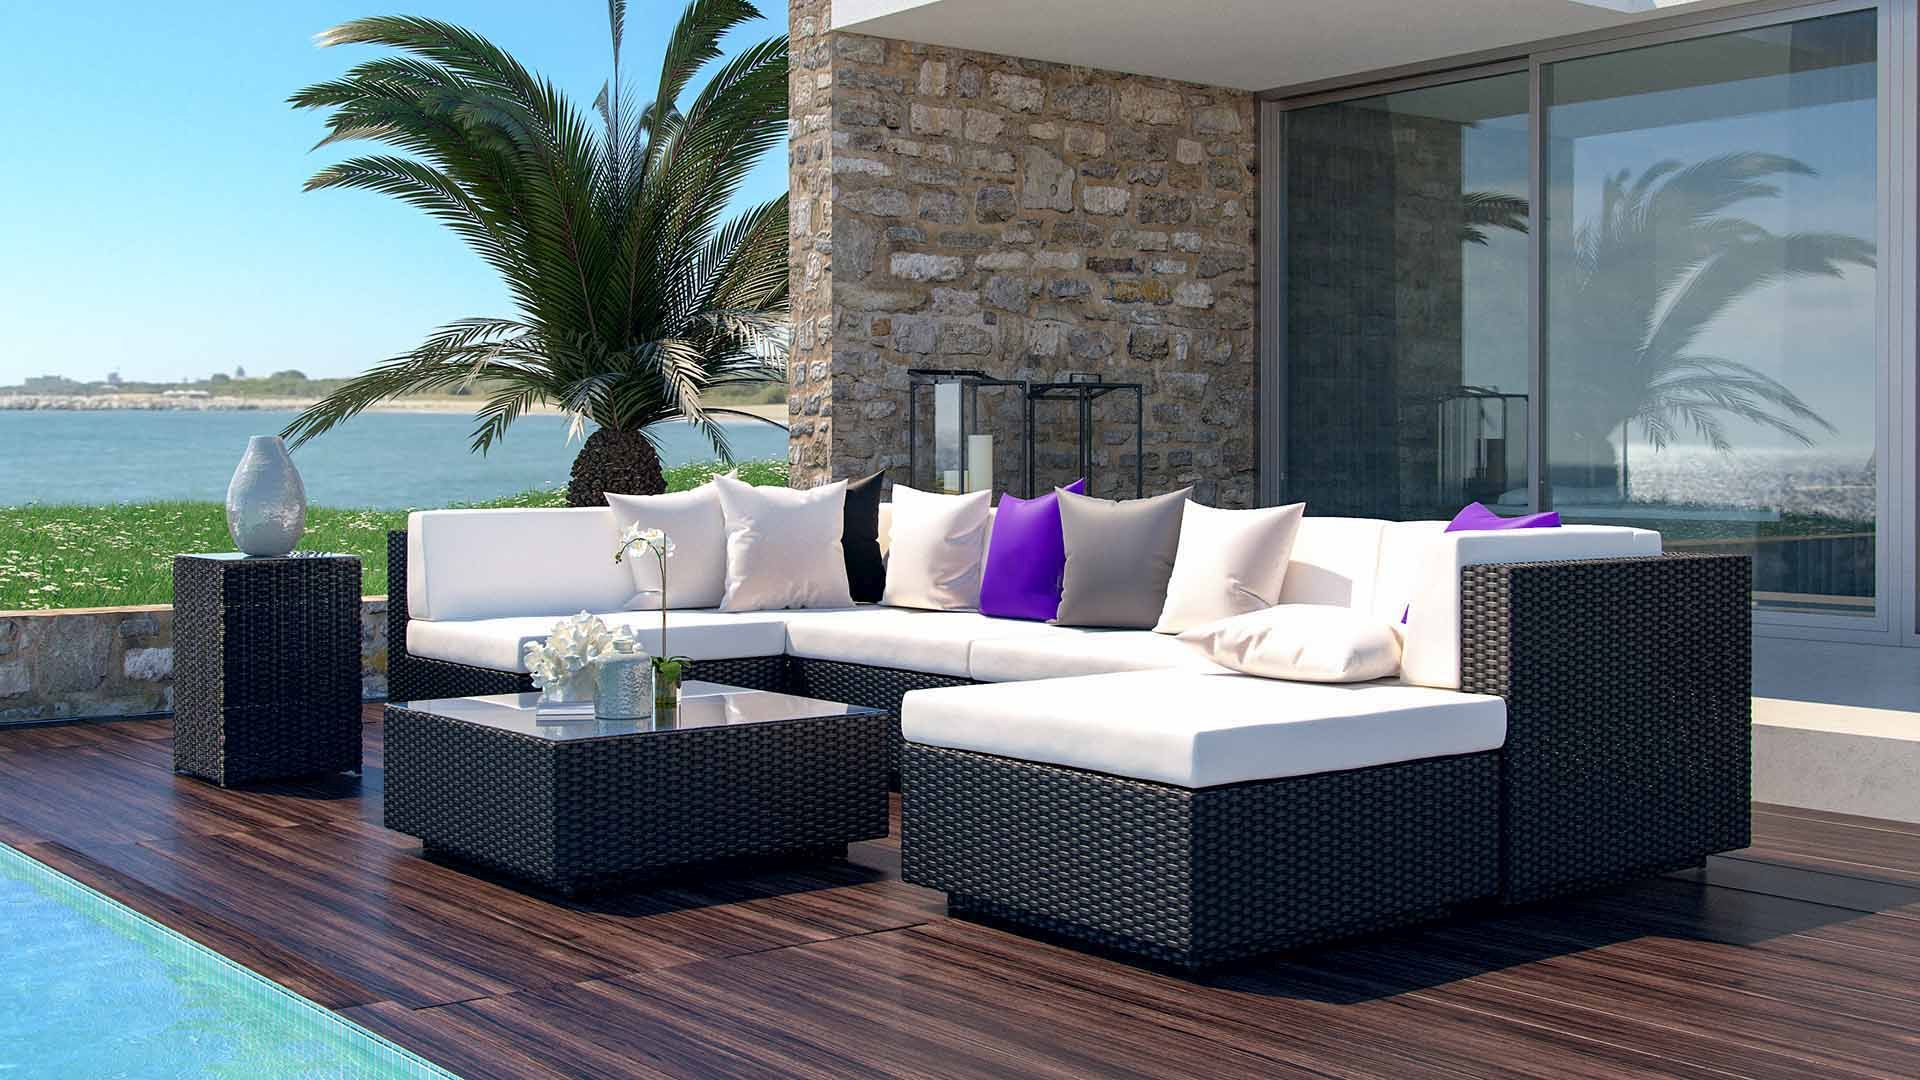 artelia rattan gartensofa aus polyrattan preiswert im gartenm bel shop bestellen. Black Bedroom Furniture Sets. Home Design Ideas